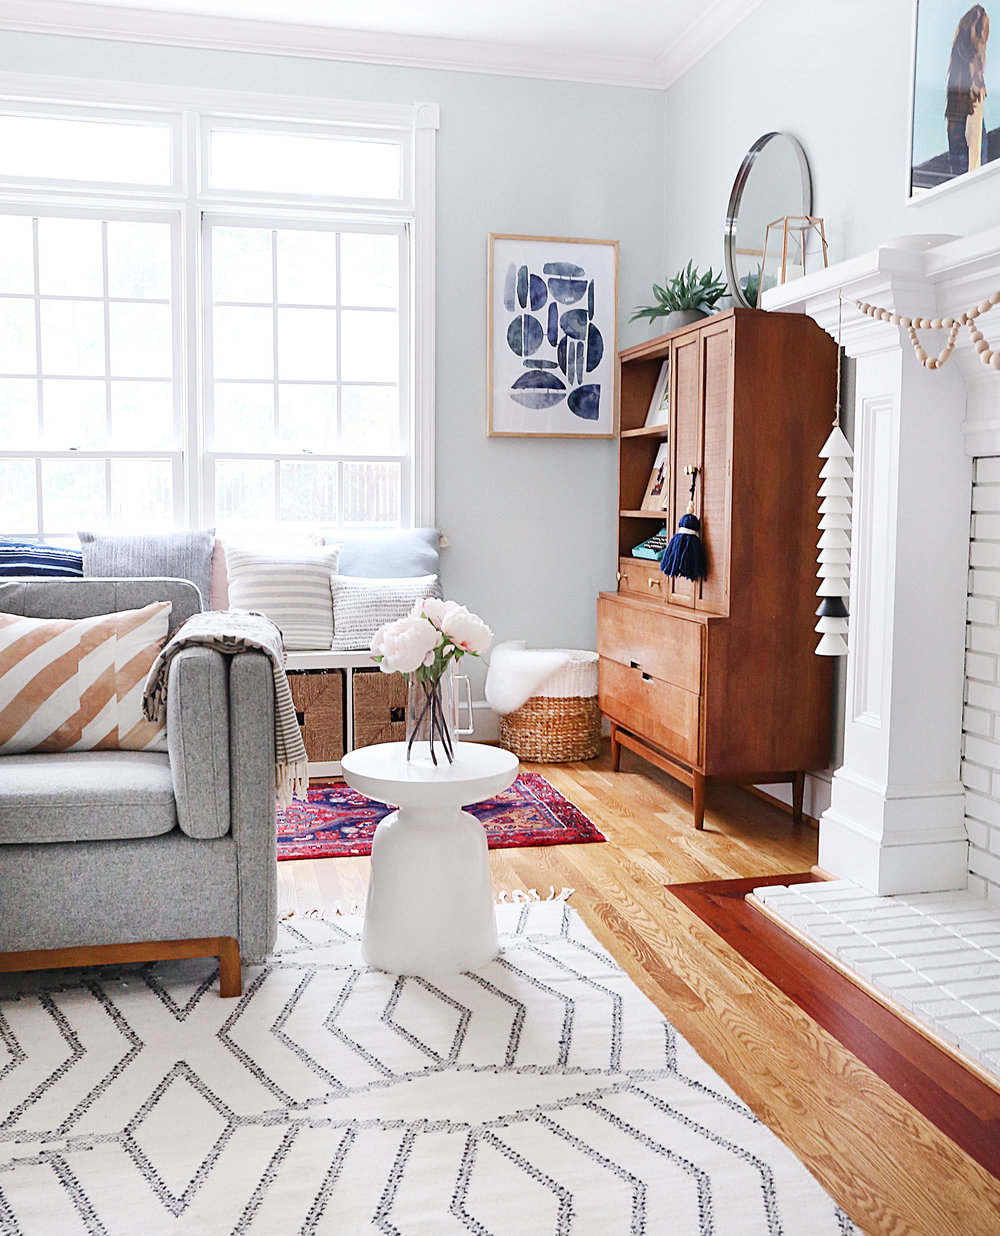 grey chair   /   side table   /    rug (similar)   /   wind chime